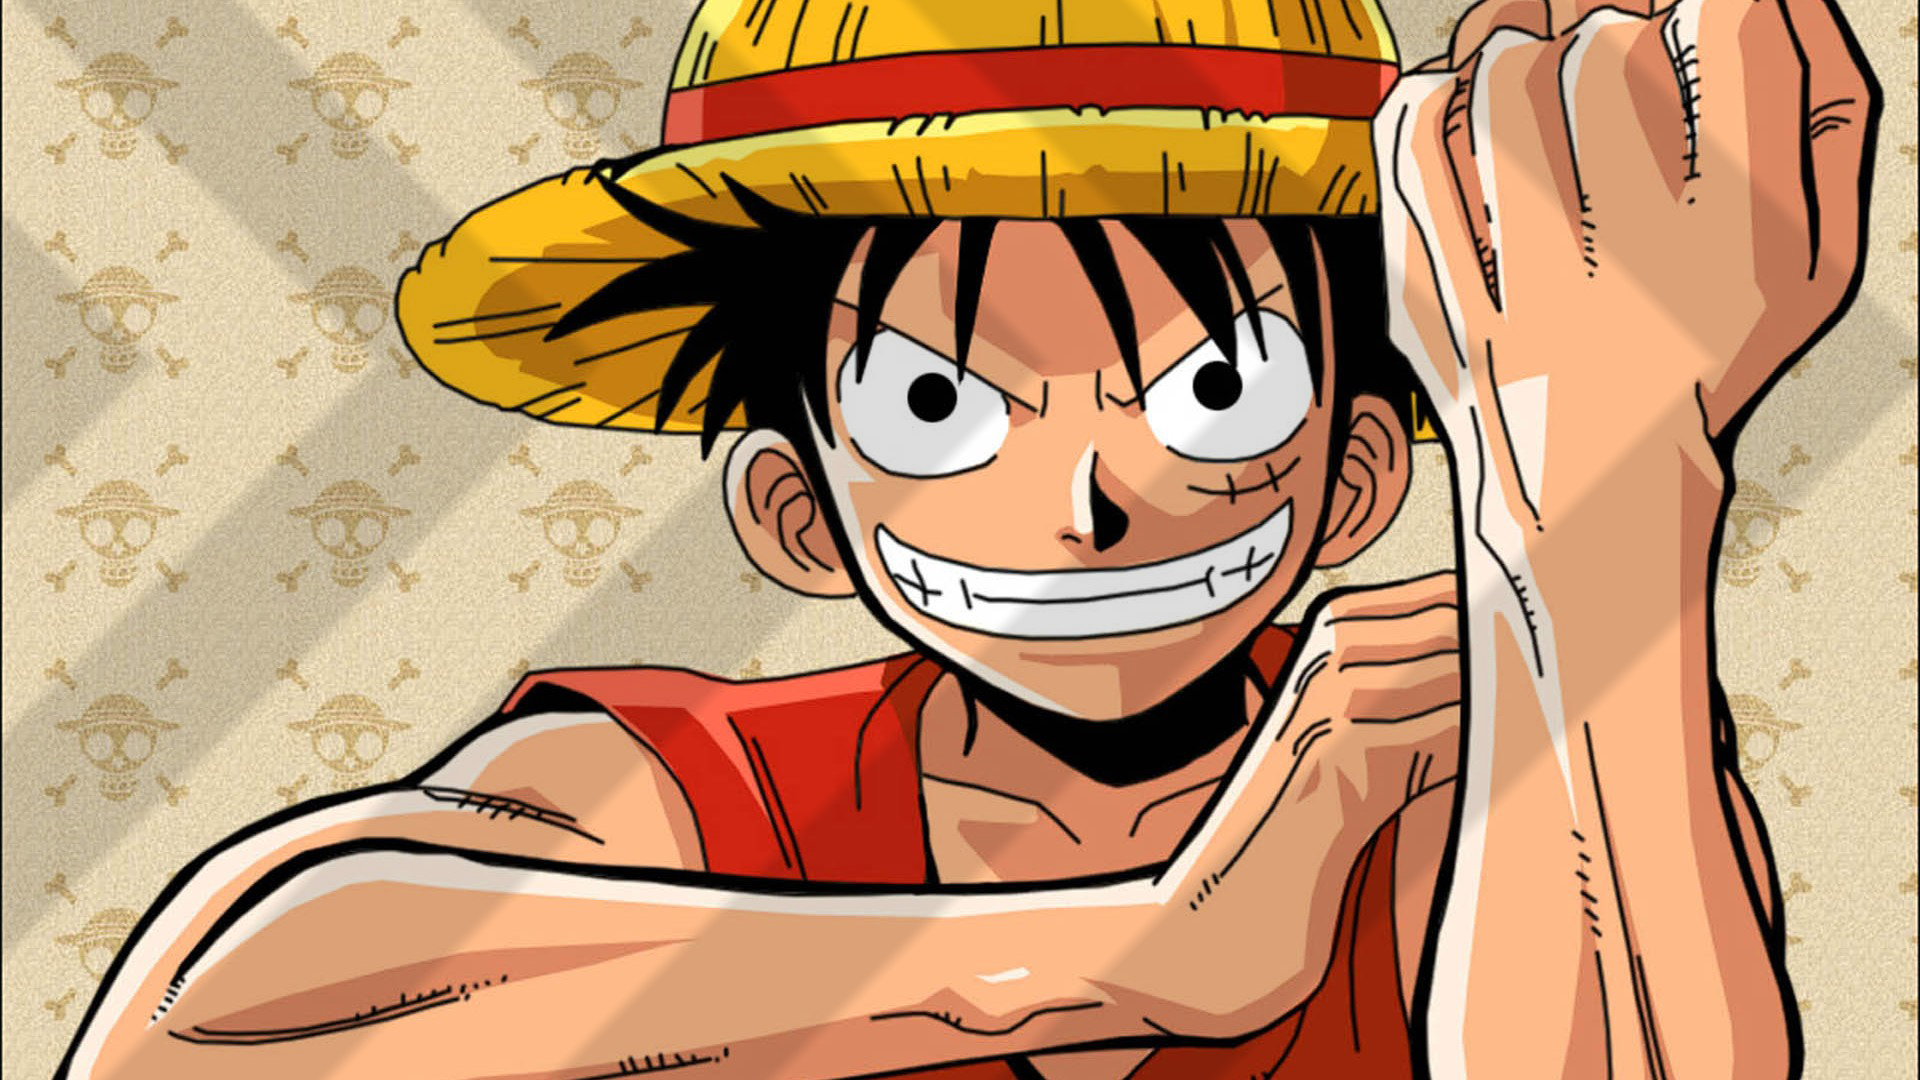 Free Download Download One Piece Luffy Hd Wallpaper Wallpaperspointscom 1920x1080 For Your Desktop Mobile Tablet Explore 76 Luffy Wallpaper One Piece Wallpaper Luffy One Piece Desktop Wallpaper Monkey D Luffy Wallpapers